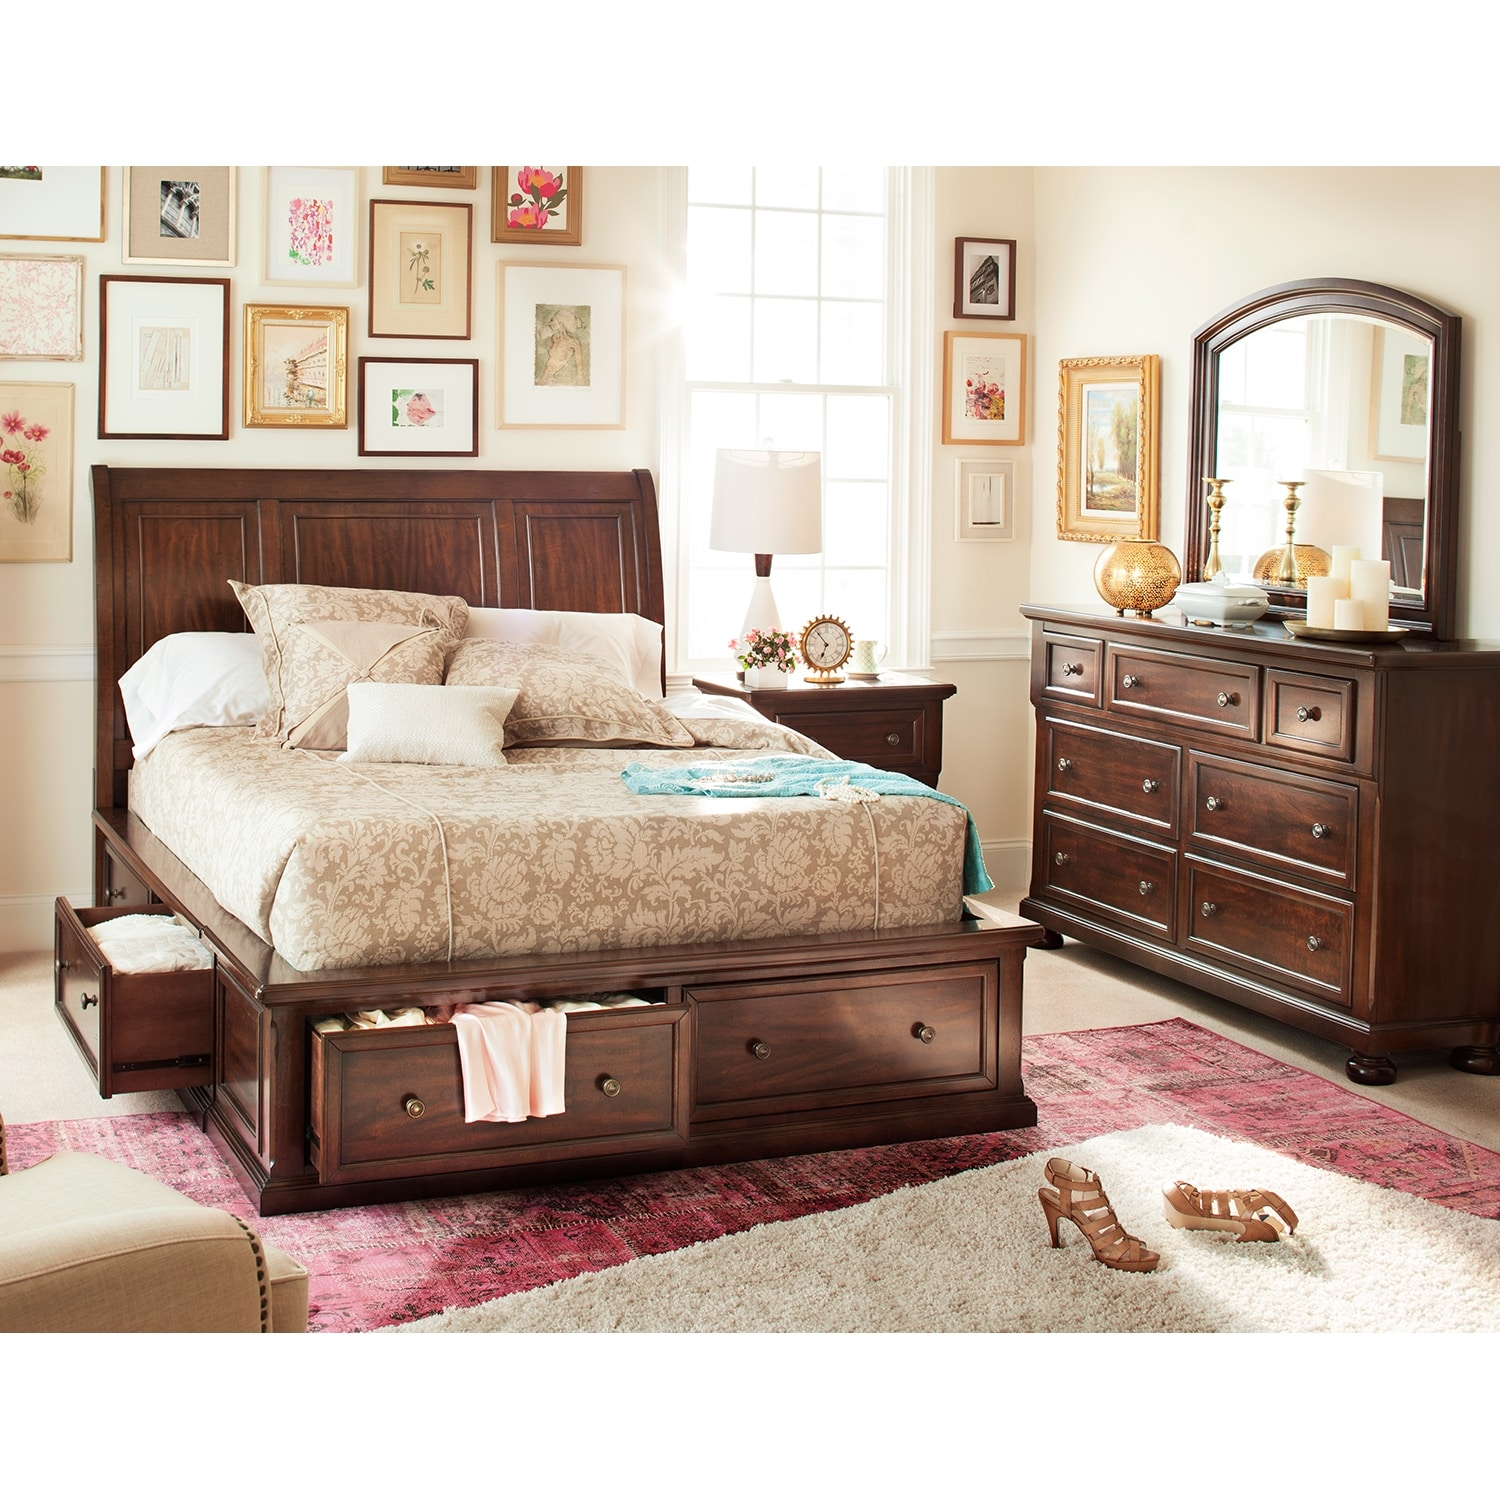 Hanover 5-Piece Storage Bedroom Set with Dresser and Mirror